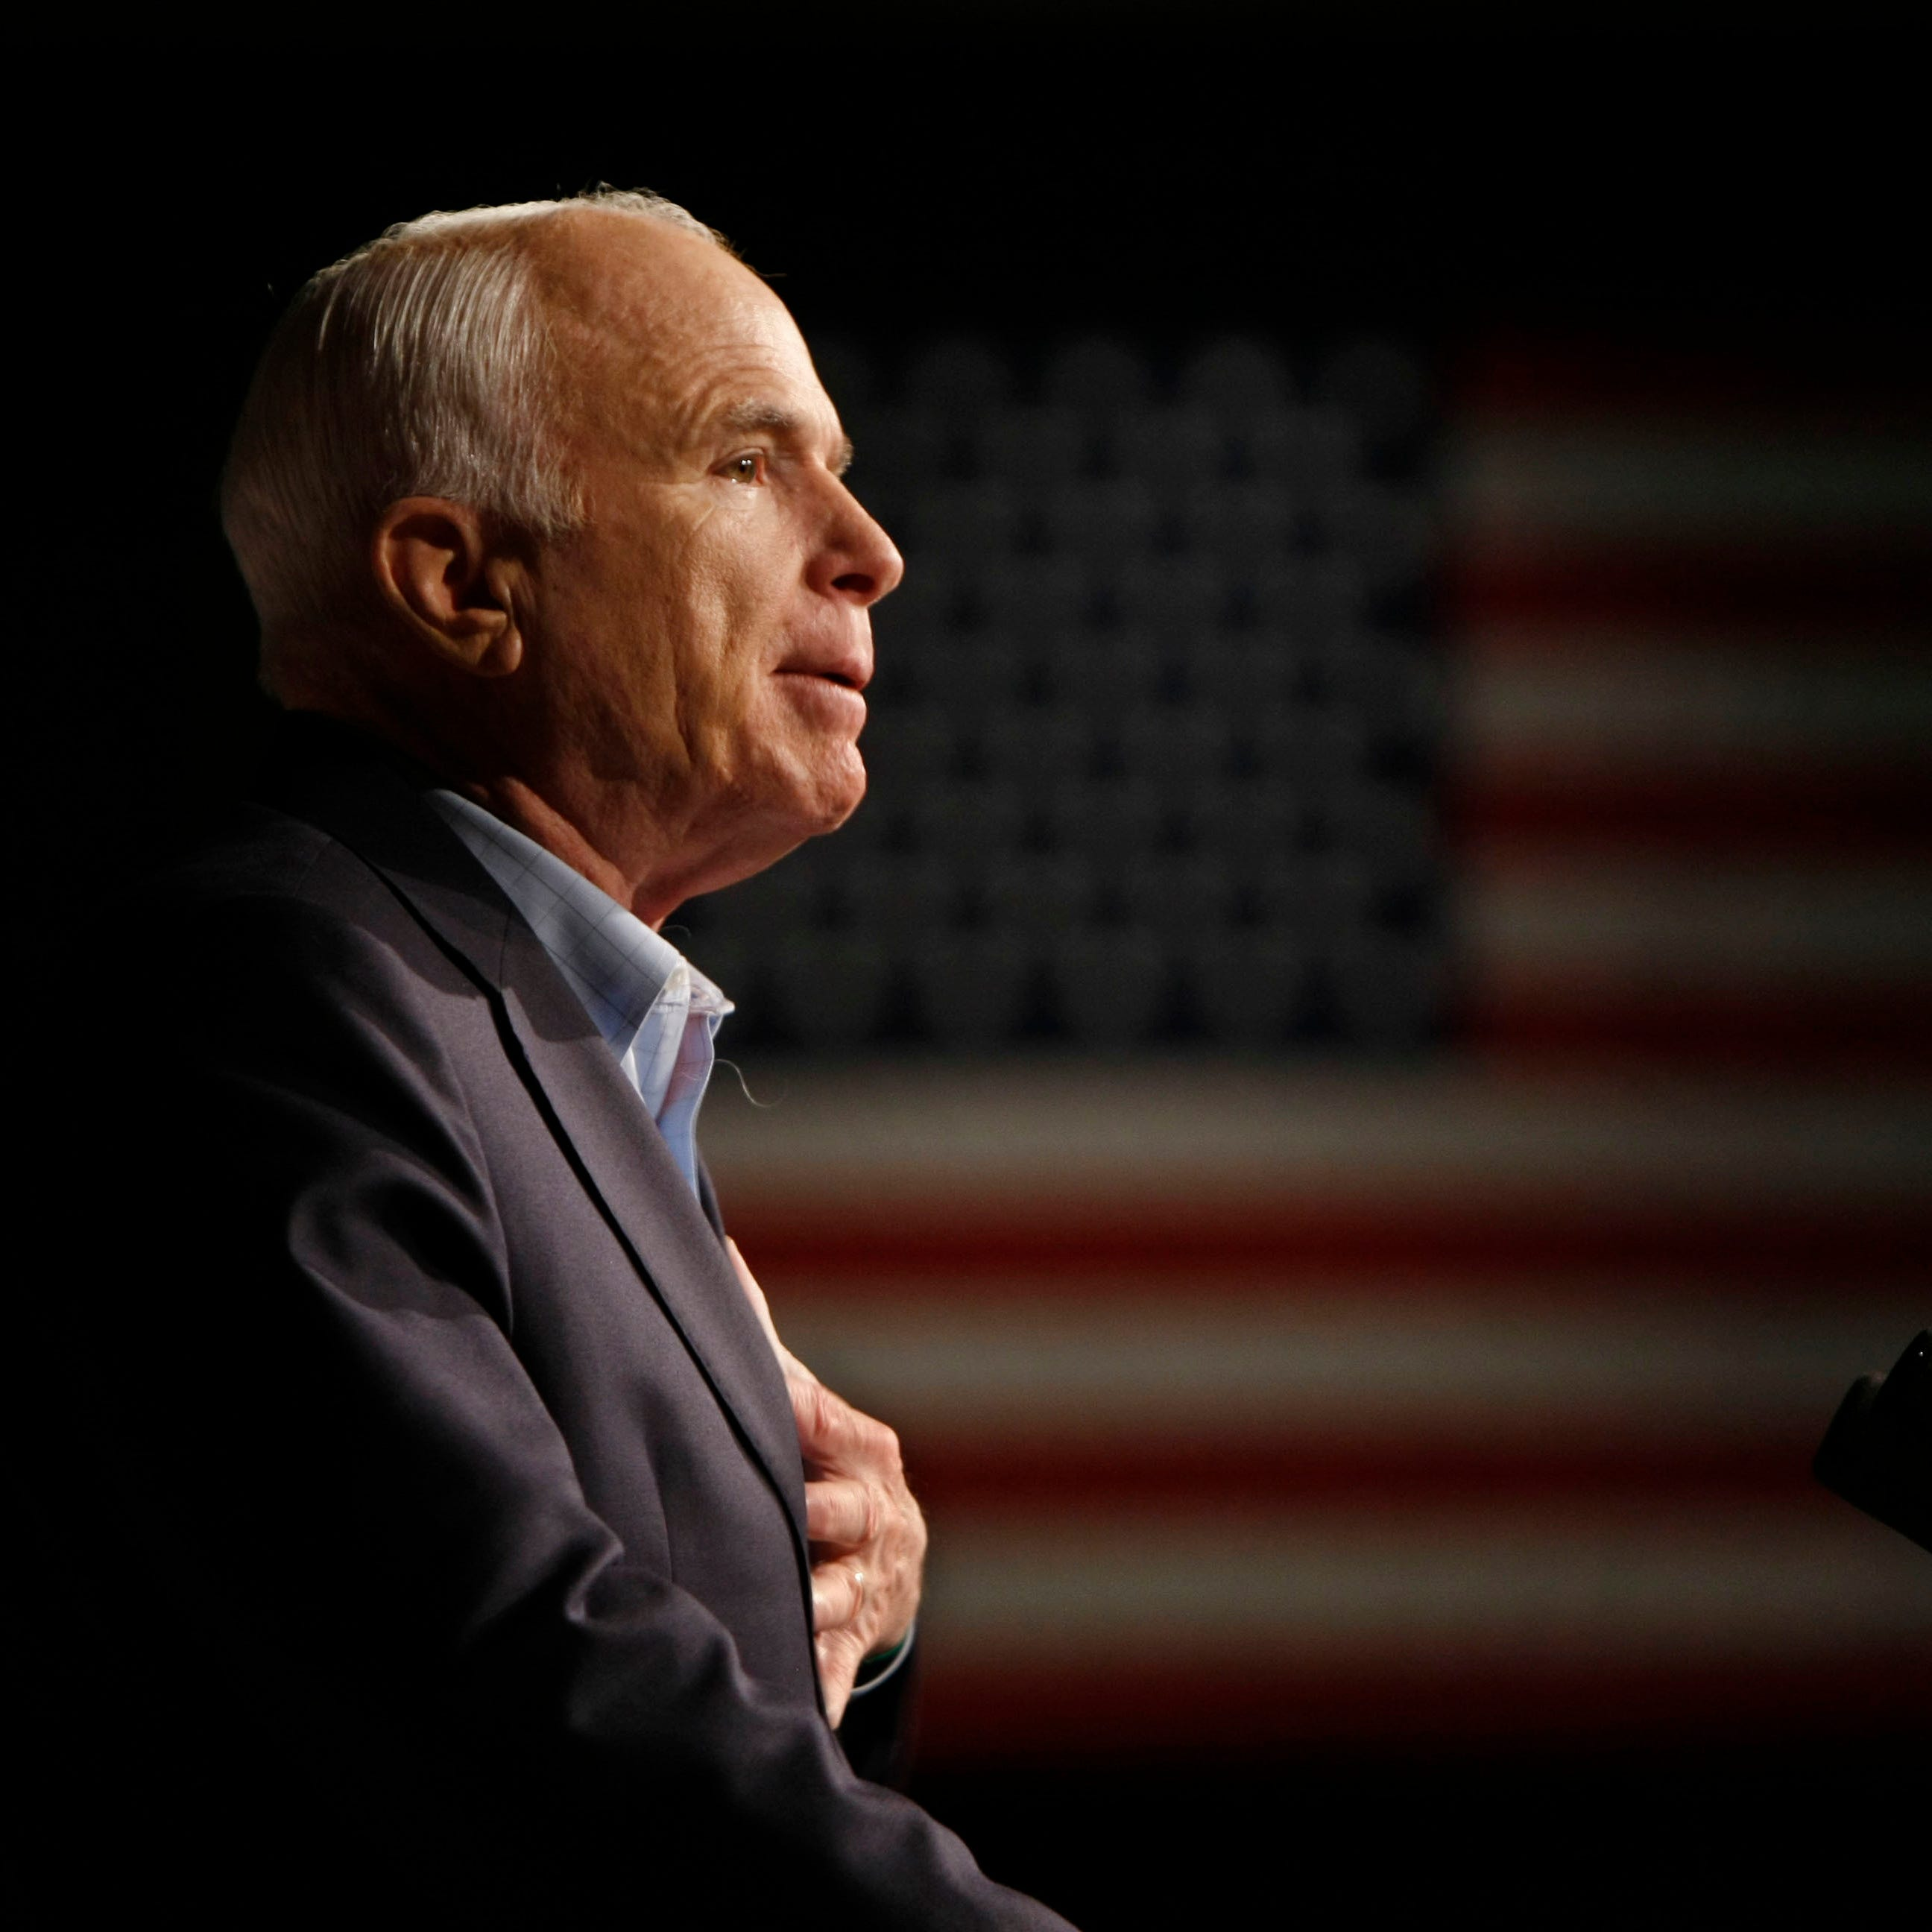 Former presidents Bush and Obama expected to speak at John McCain's funeral